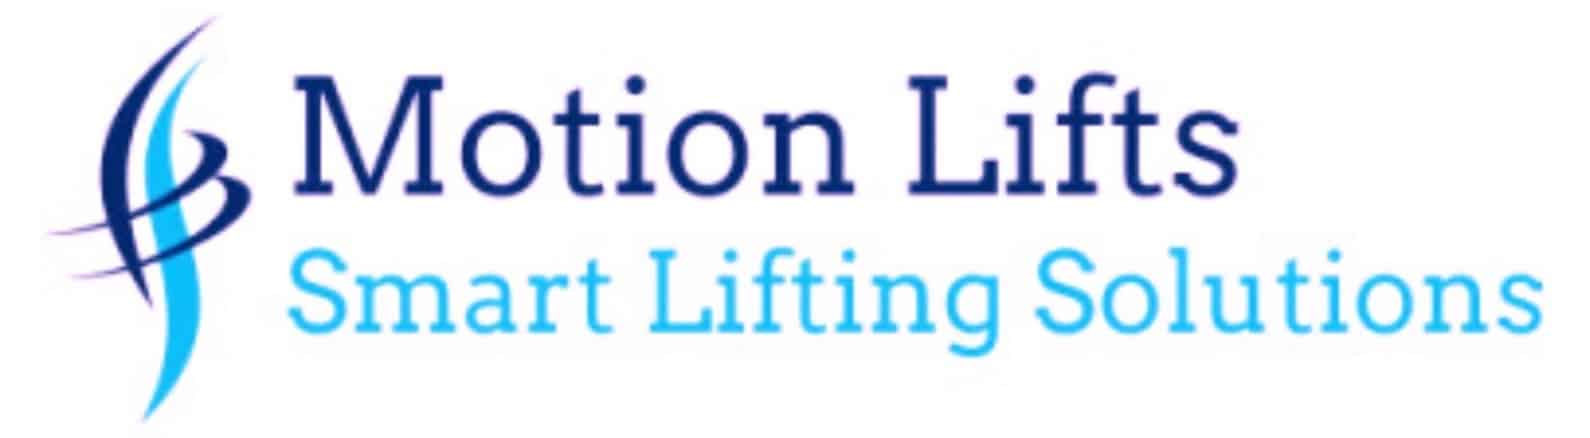 motion lifts - web design eire